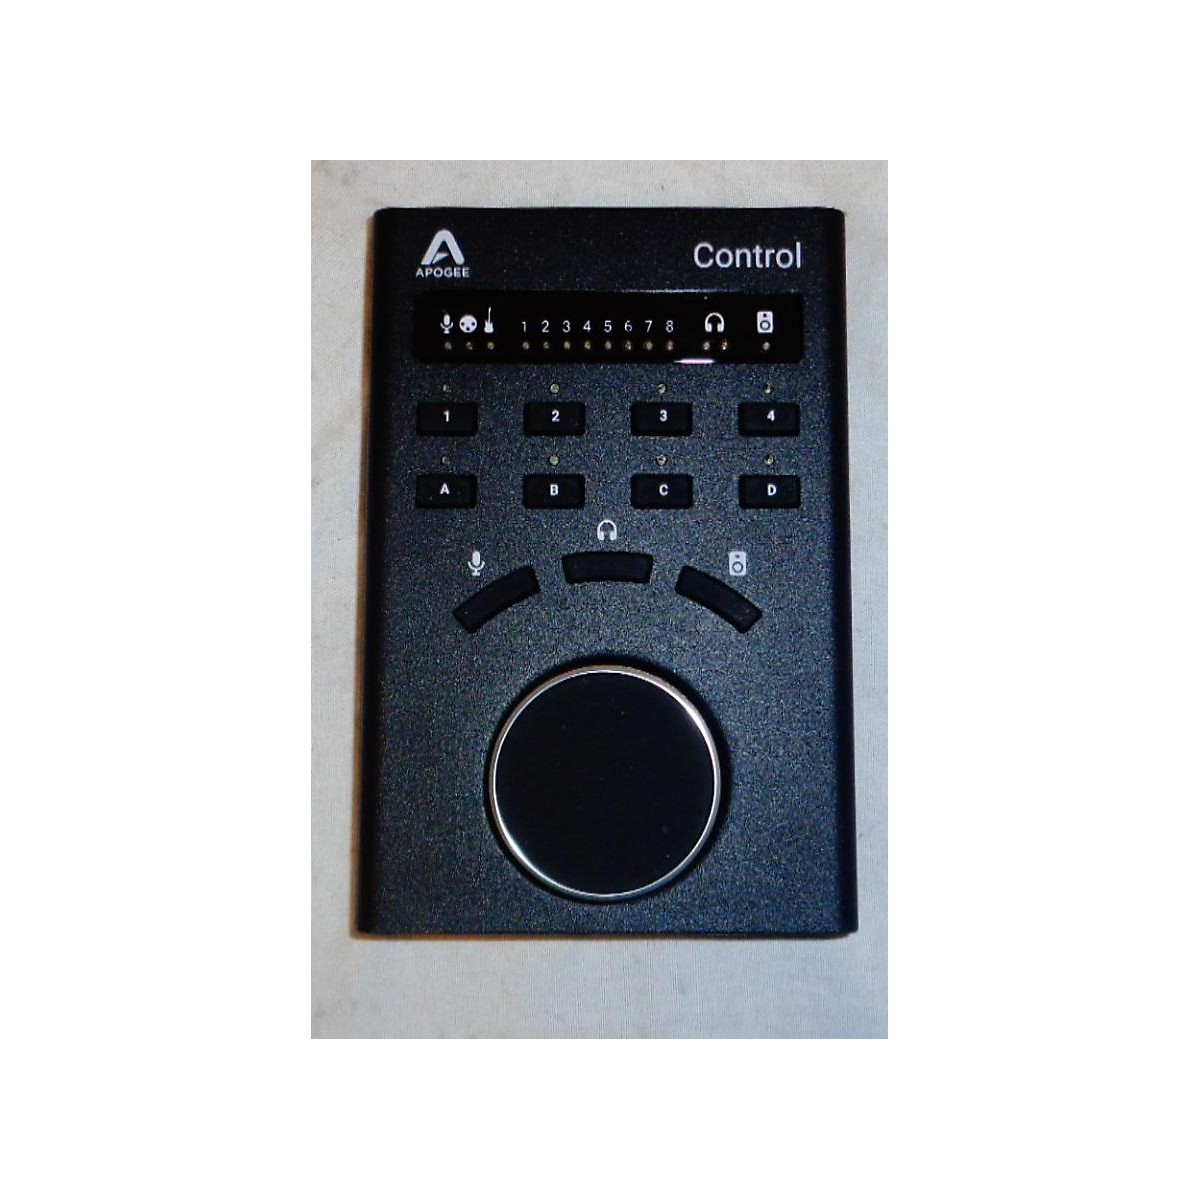 Apogee Control For Element Series Audio Interface